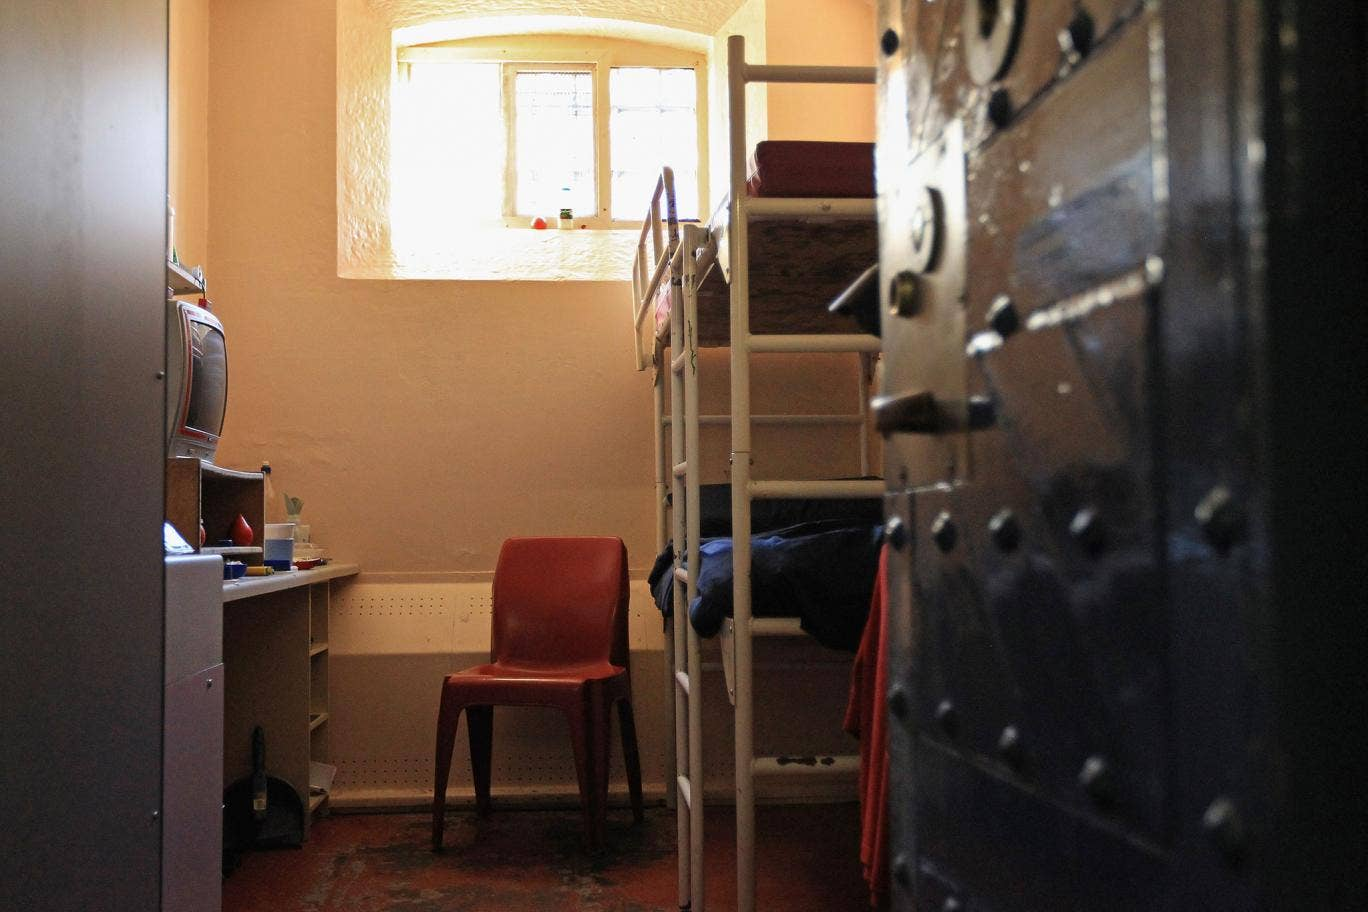 New chapter: books transform prison life for some convicts